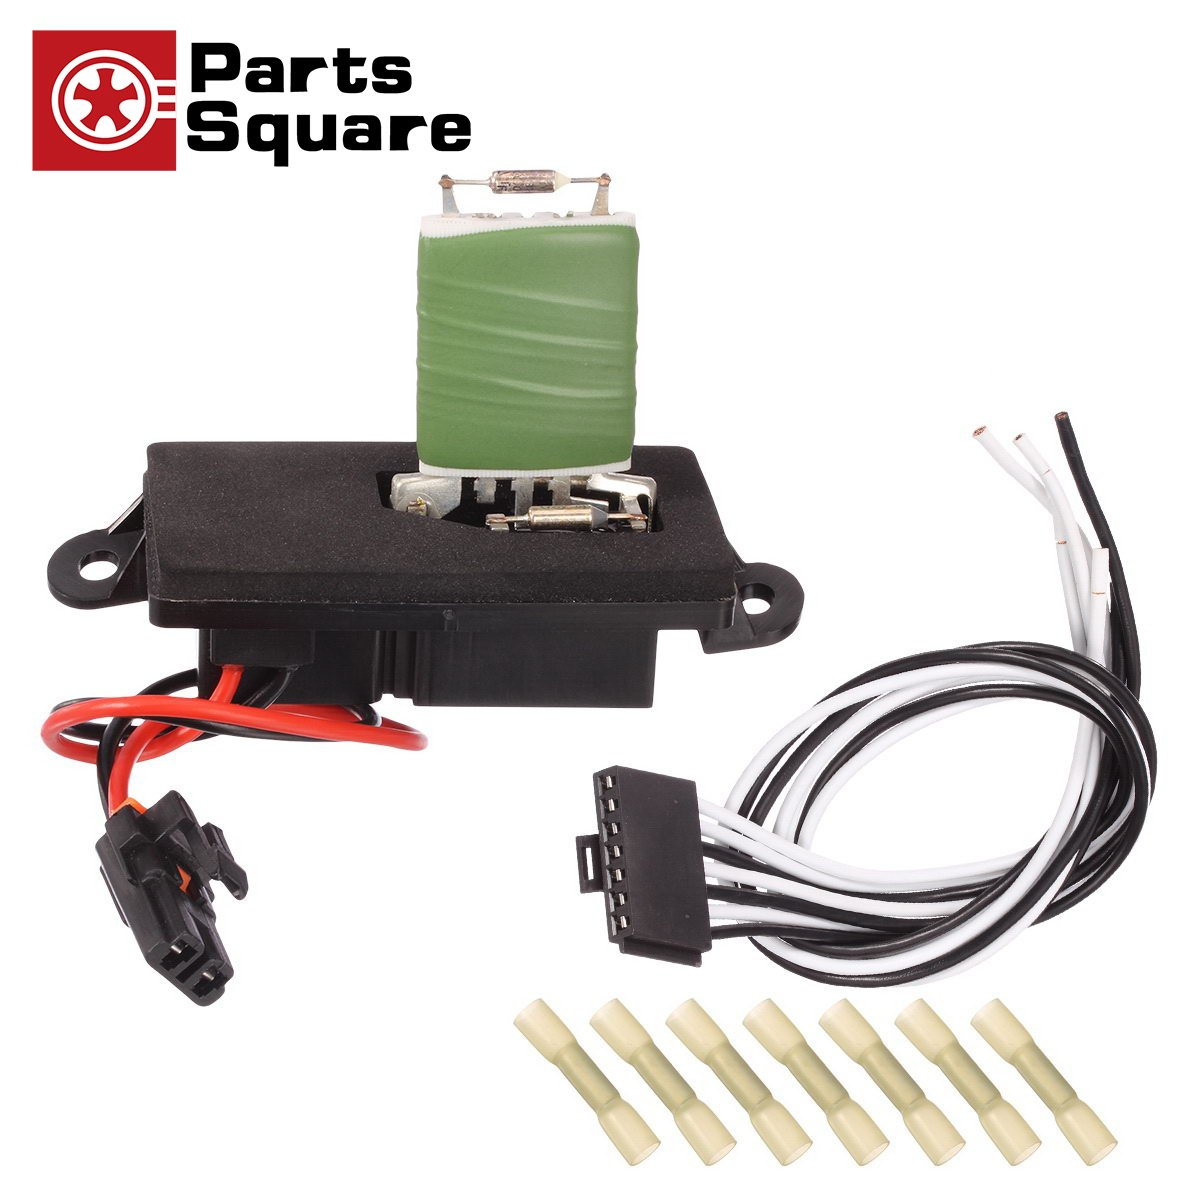 Partssquare Manual Hvac Blower Motor Resistor 15305077 74 Buick Under Dash Fuse Box Removal 15862656 Wire Harness Connector Replacement For 2002 2003 2004 2005 2006 Chevrolet